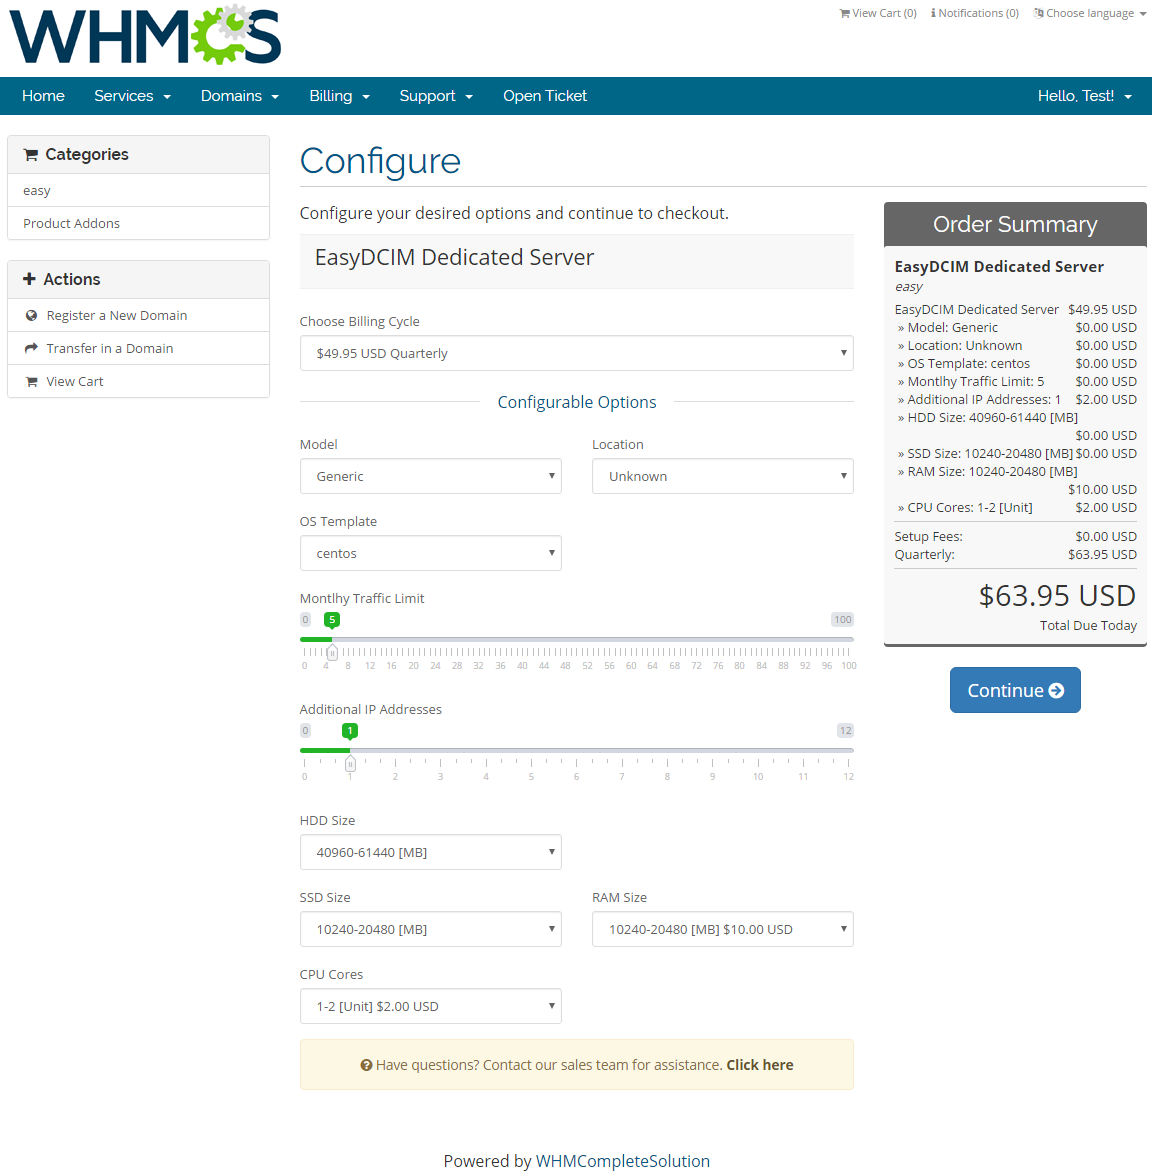 EasyDCIM Dedicated Servers For WHMCS: Screen 7